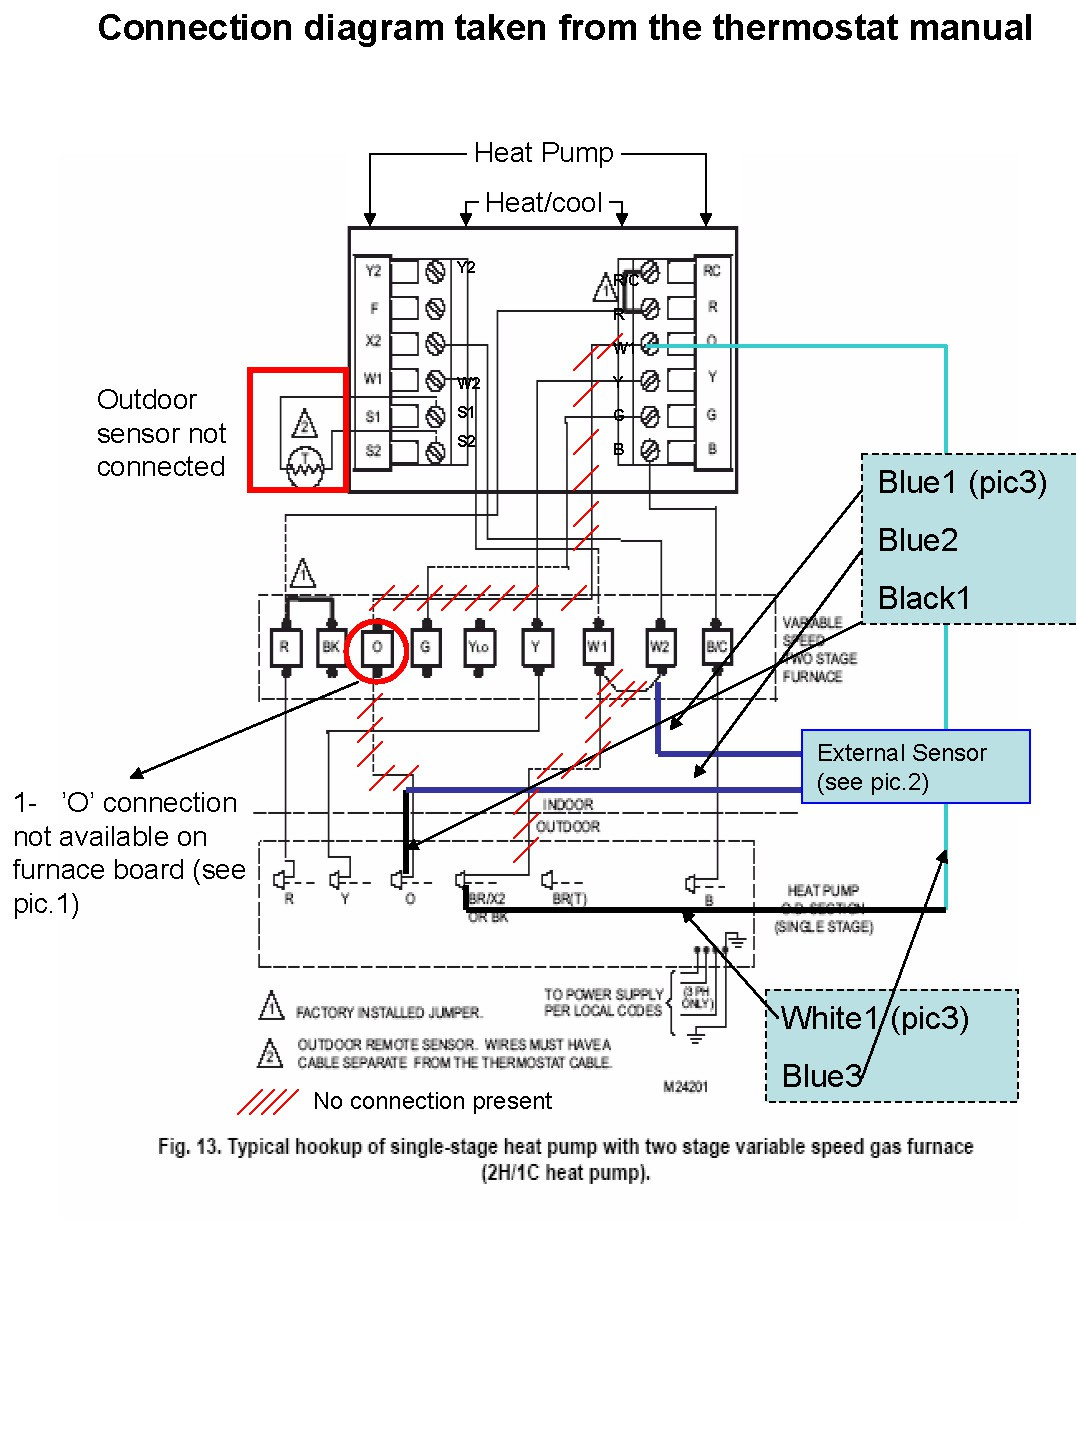 Single stage thermostat wiring diagram collection wiring diagram single stage thermostat wiring diagram collection trane thermostat wiring diagram lovely home heater thermostat wiring swarovskicordoba